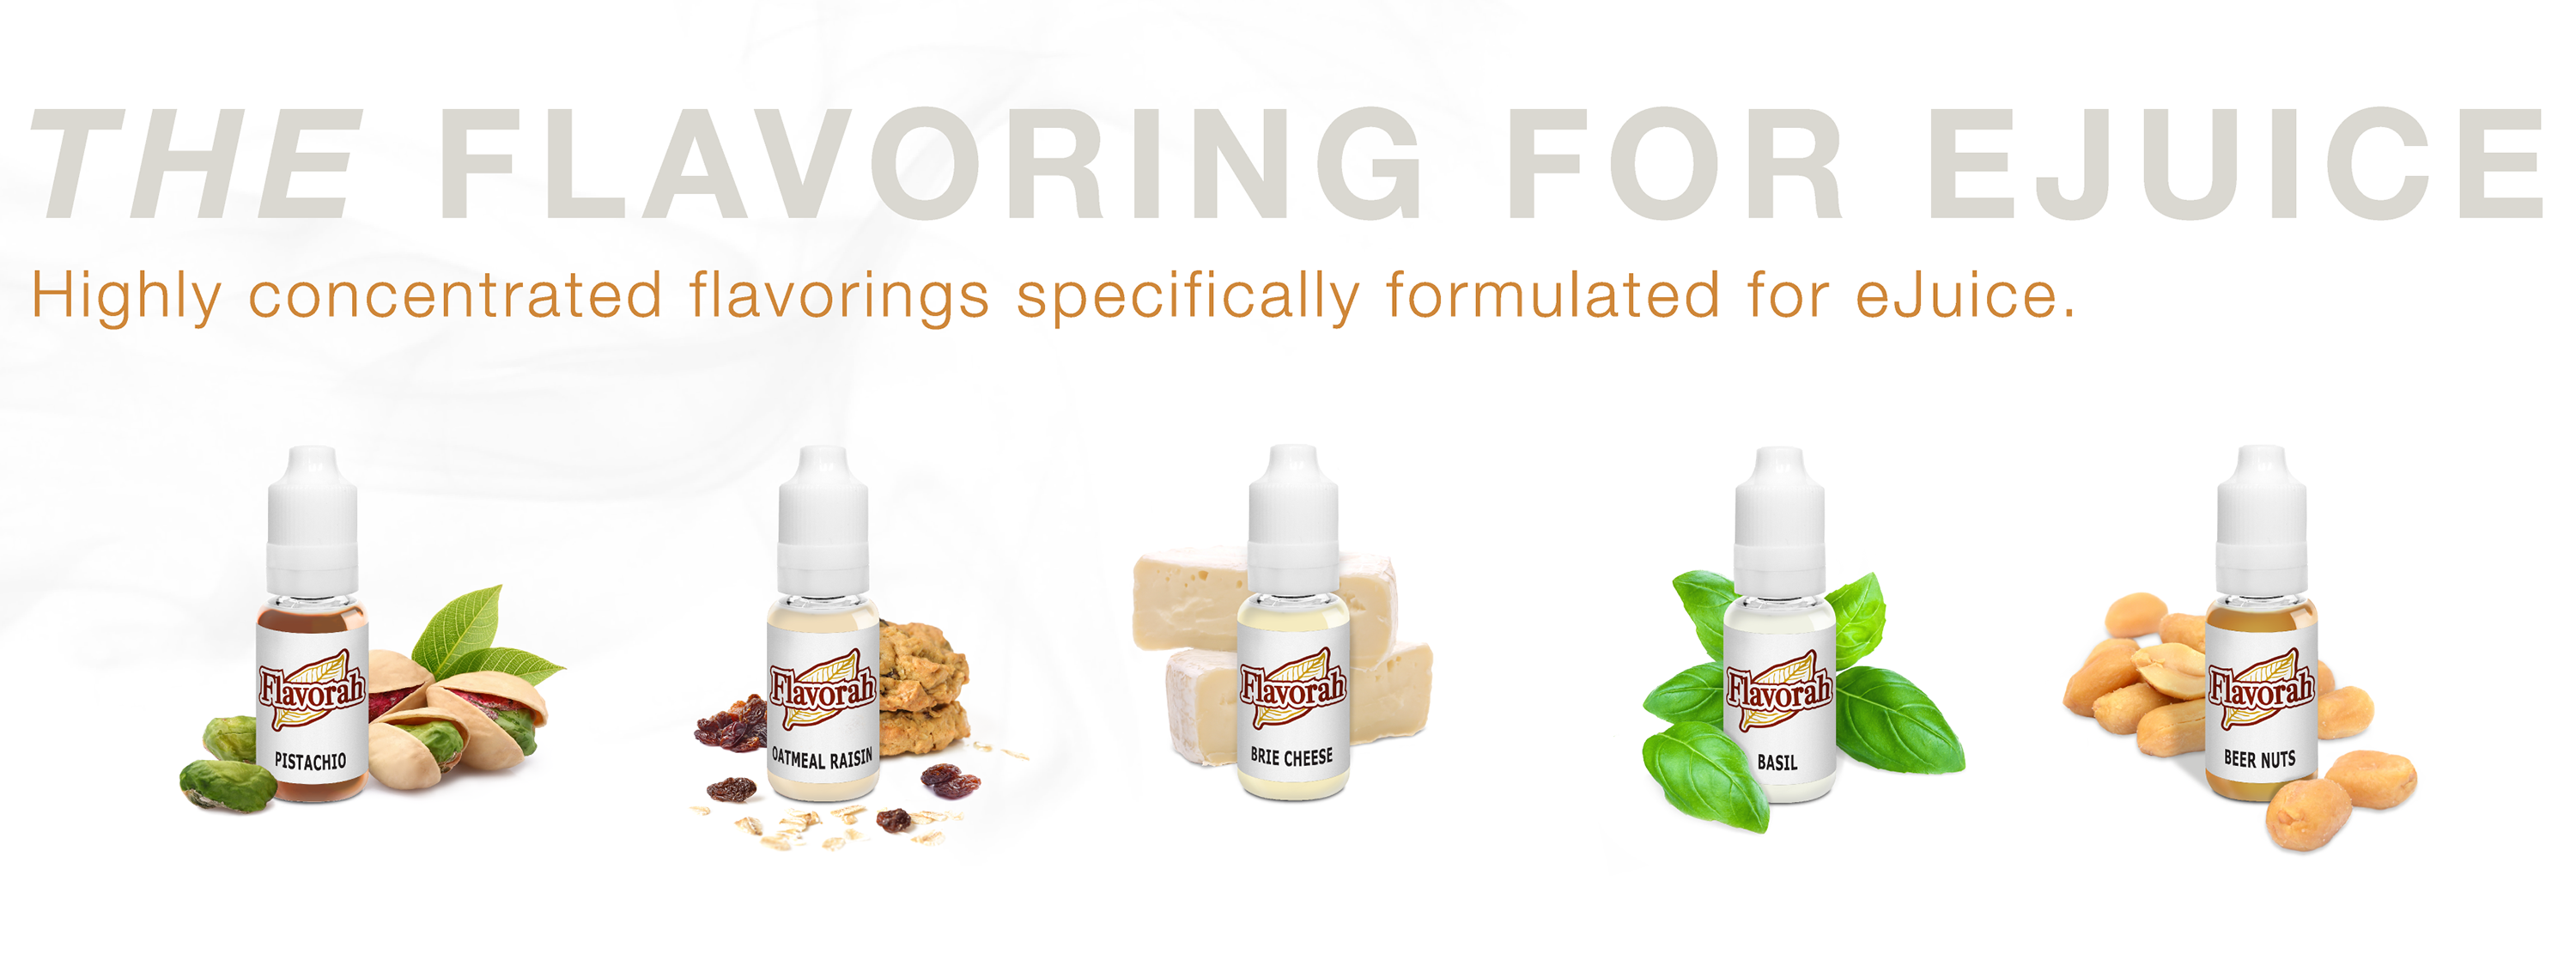 Flavorah - The Flavoring for eJuice - Savory Flavors - Highly concentrated flavorings specifically formulated for eJuice